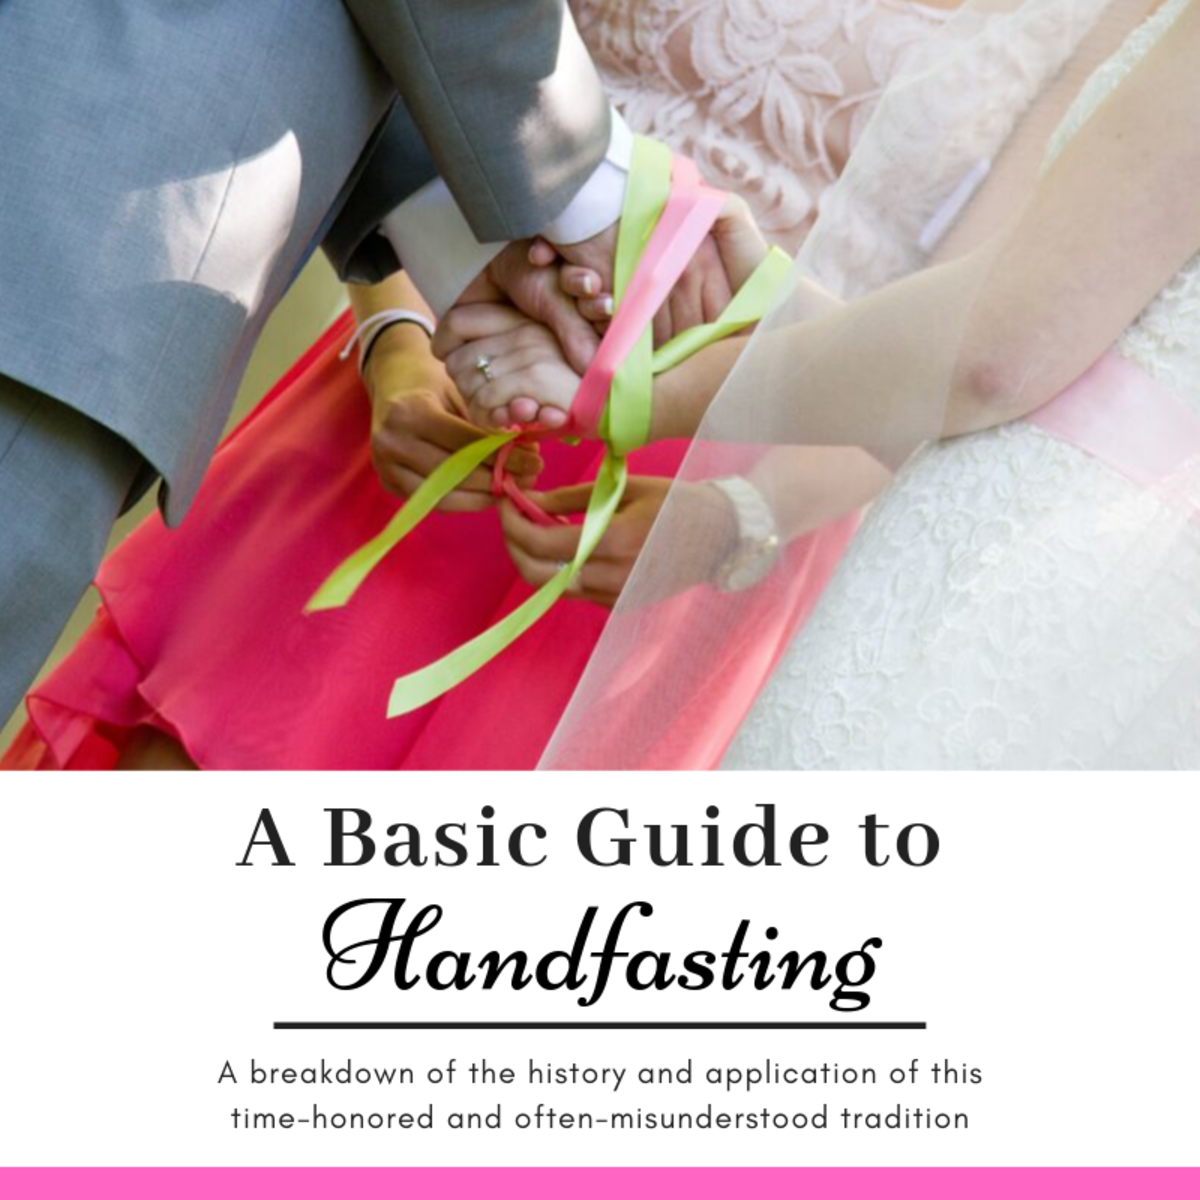 Handfasting: Not Just for Pagan or Wiccan Wedding Vows